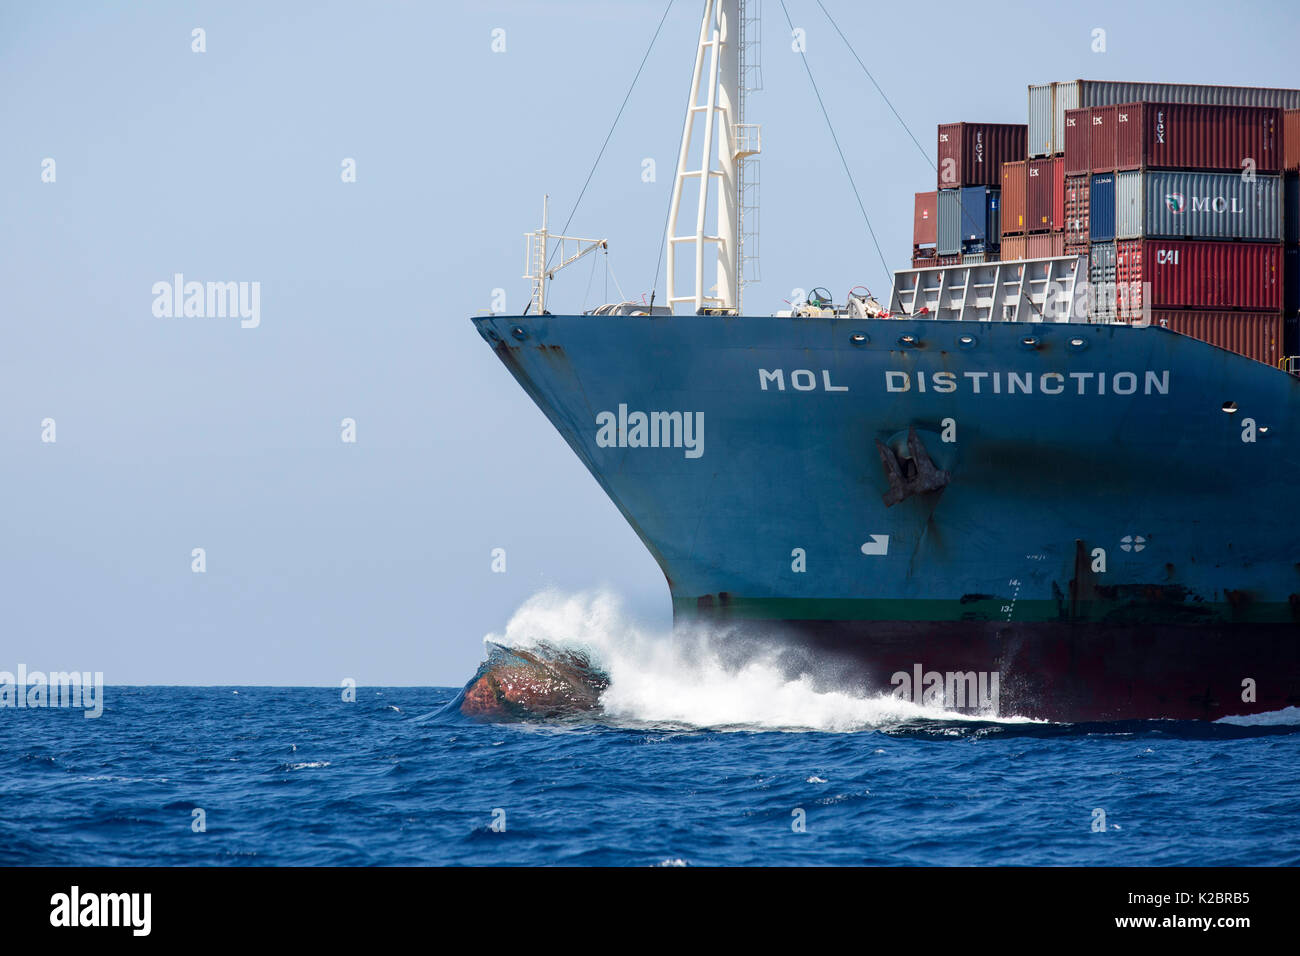 Waves crashing against the bow of the container ship 'Mol Distinction', off Mirissa, Sri Lanka, Indian Ocean. - Stock Image